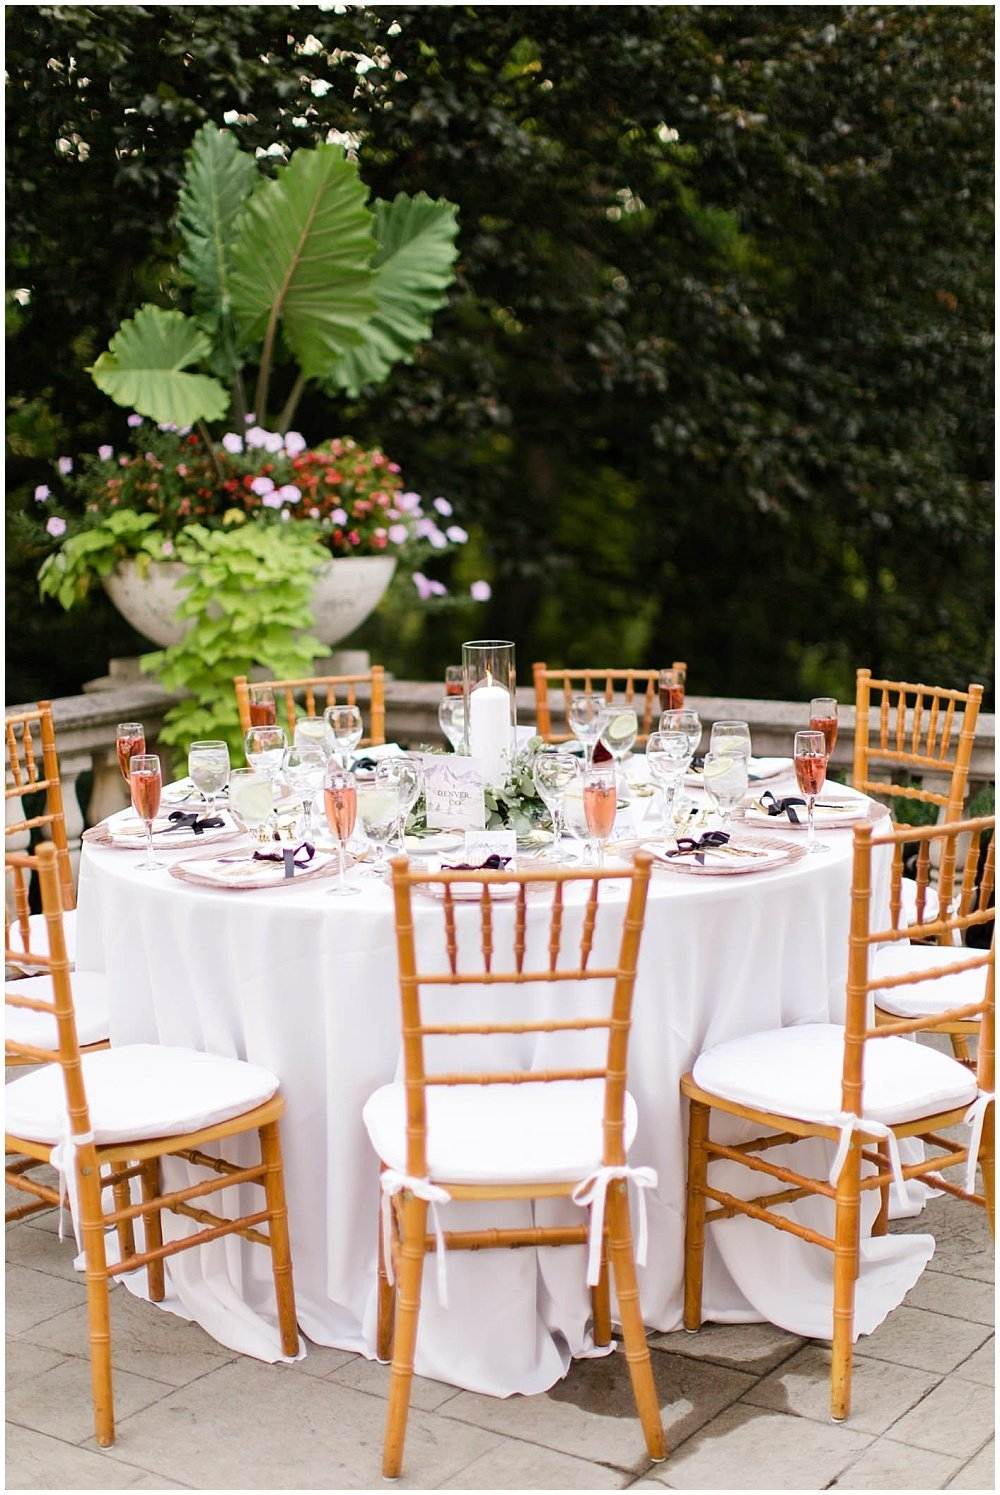 Summer-Outdoor-Terrace-Laurel-Hall-Indianapolis-Wedding-Danielle-Harris-Photography- Jessica-Dum-Wedding-Coordination-photo__0029